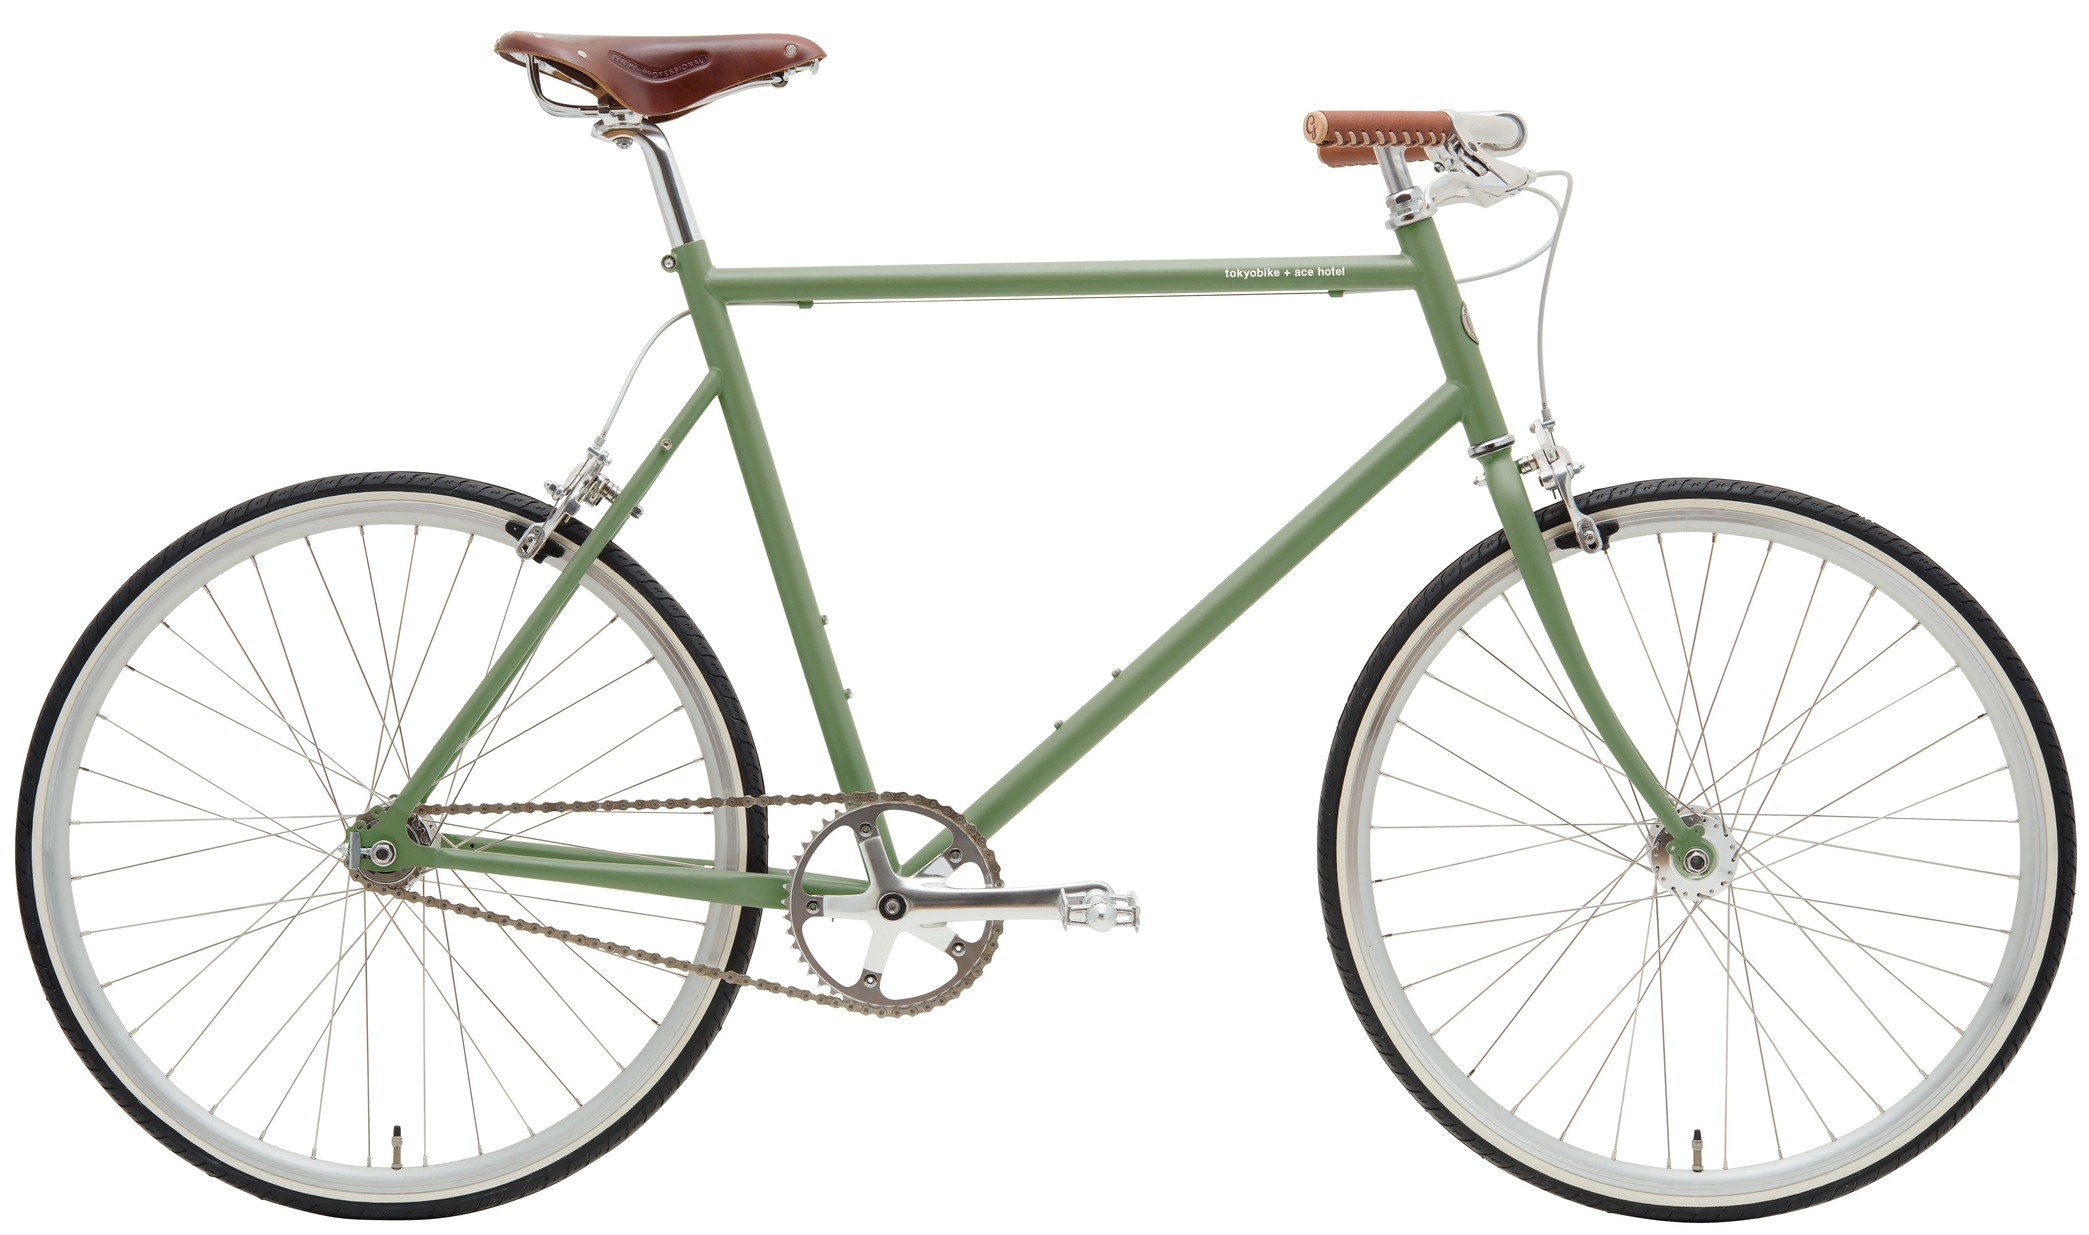 tokyobike x Ace Hotel Bicycle, $875